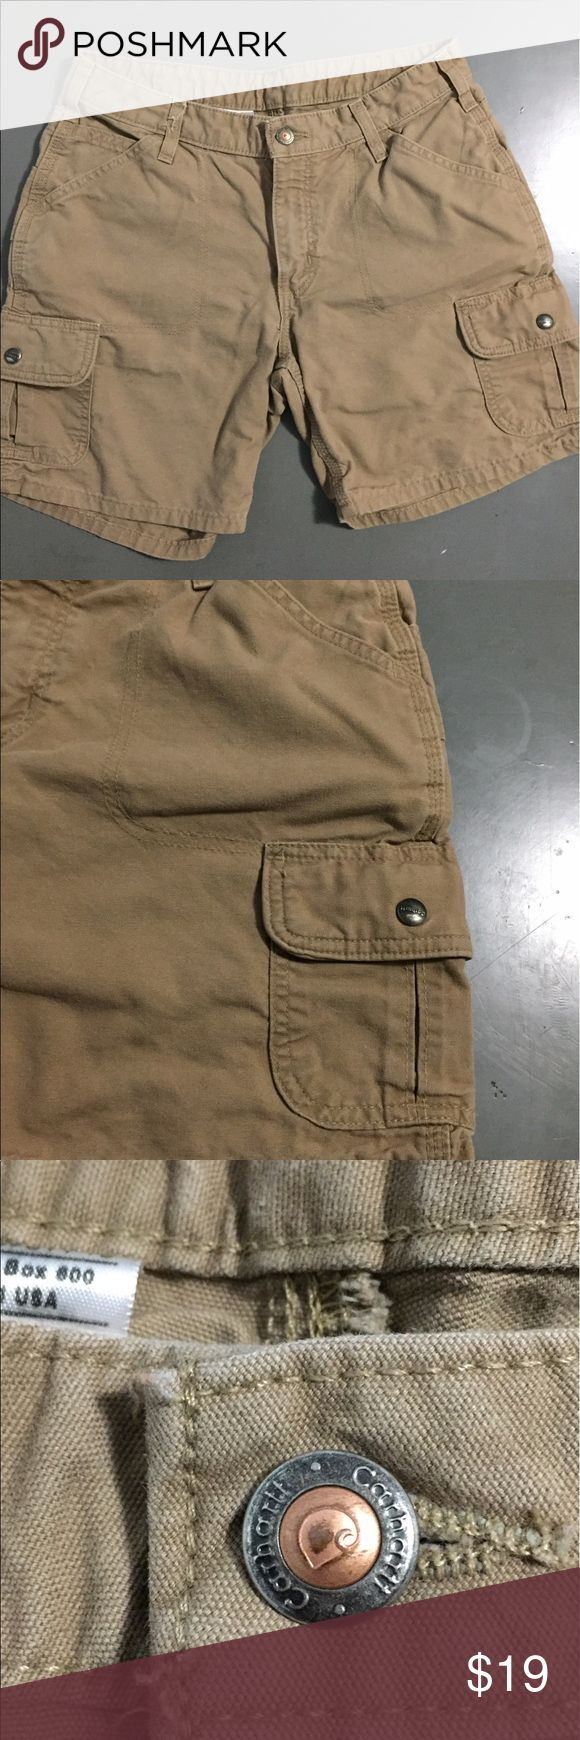 """Women's """"Carhartt"""" cargo shorts Women's Carhartt cargo style shorts. These shorts have multiple pockets as shown in pictures. These are great shorts for any activity. Carhartt Shorts Cargos"""